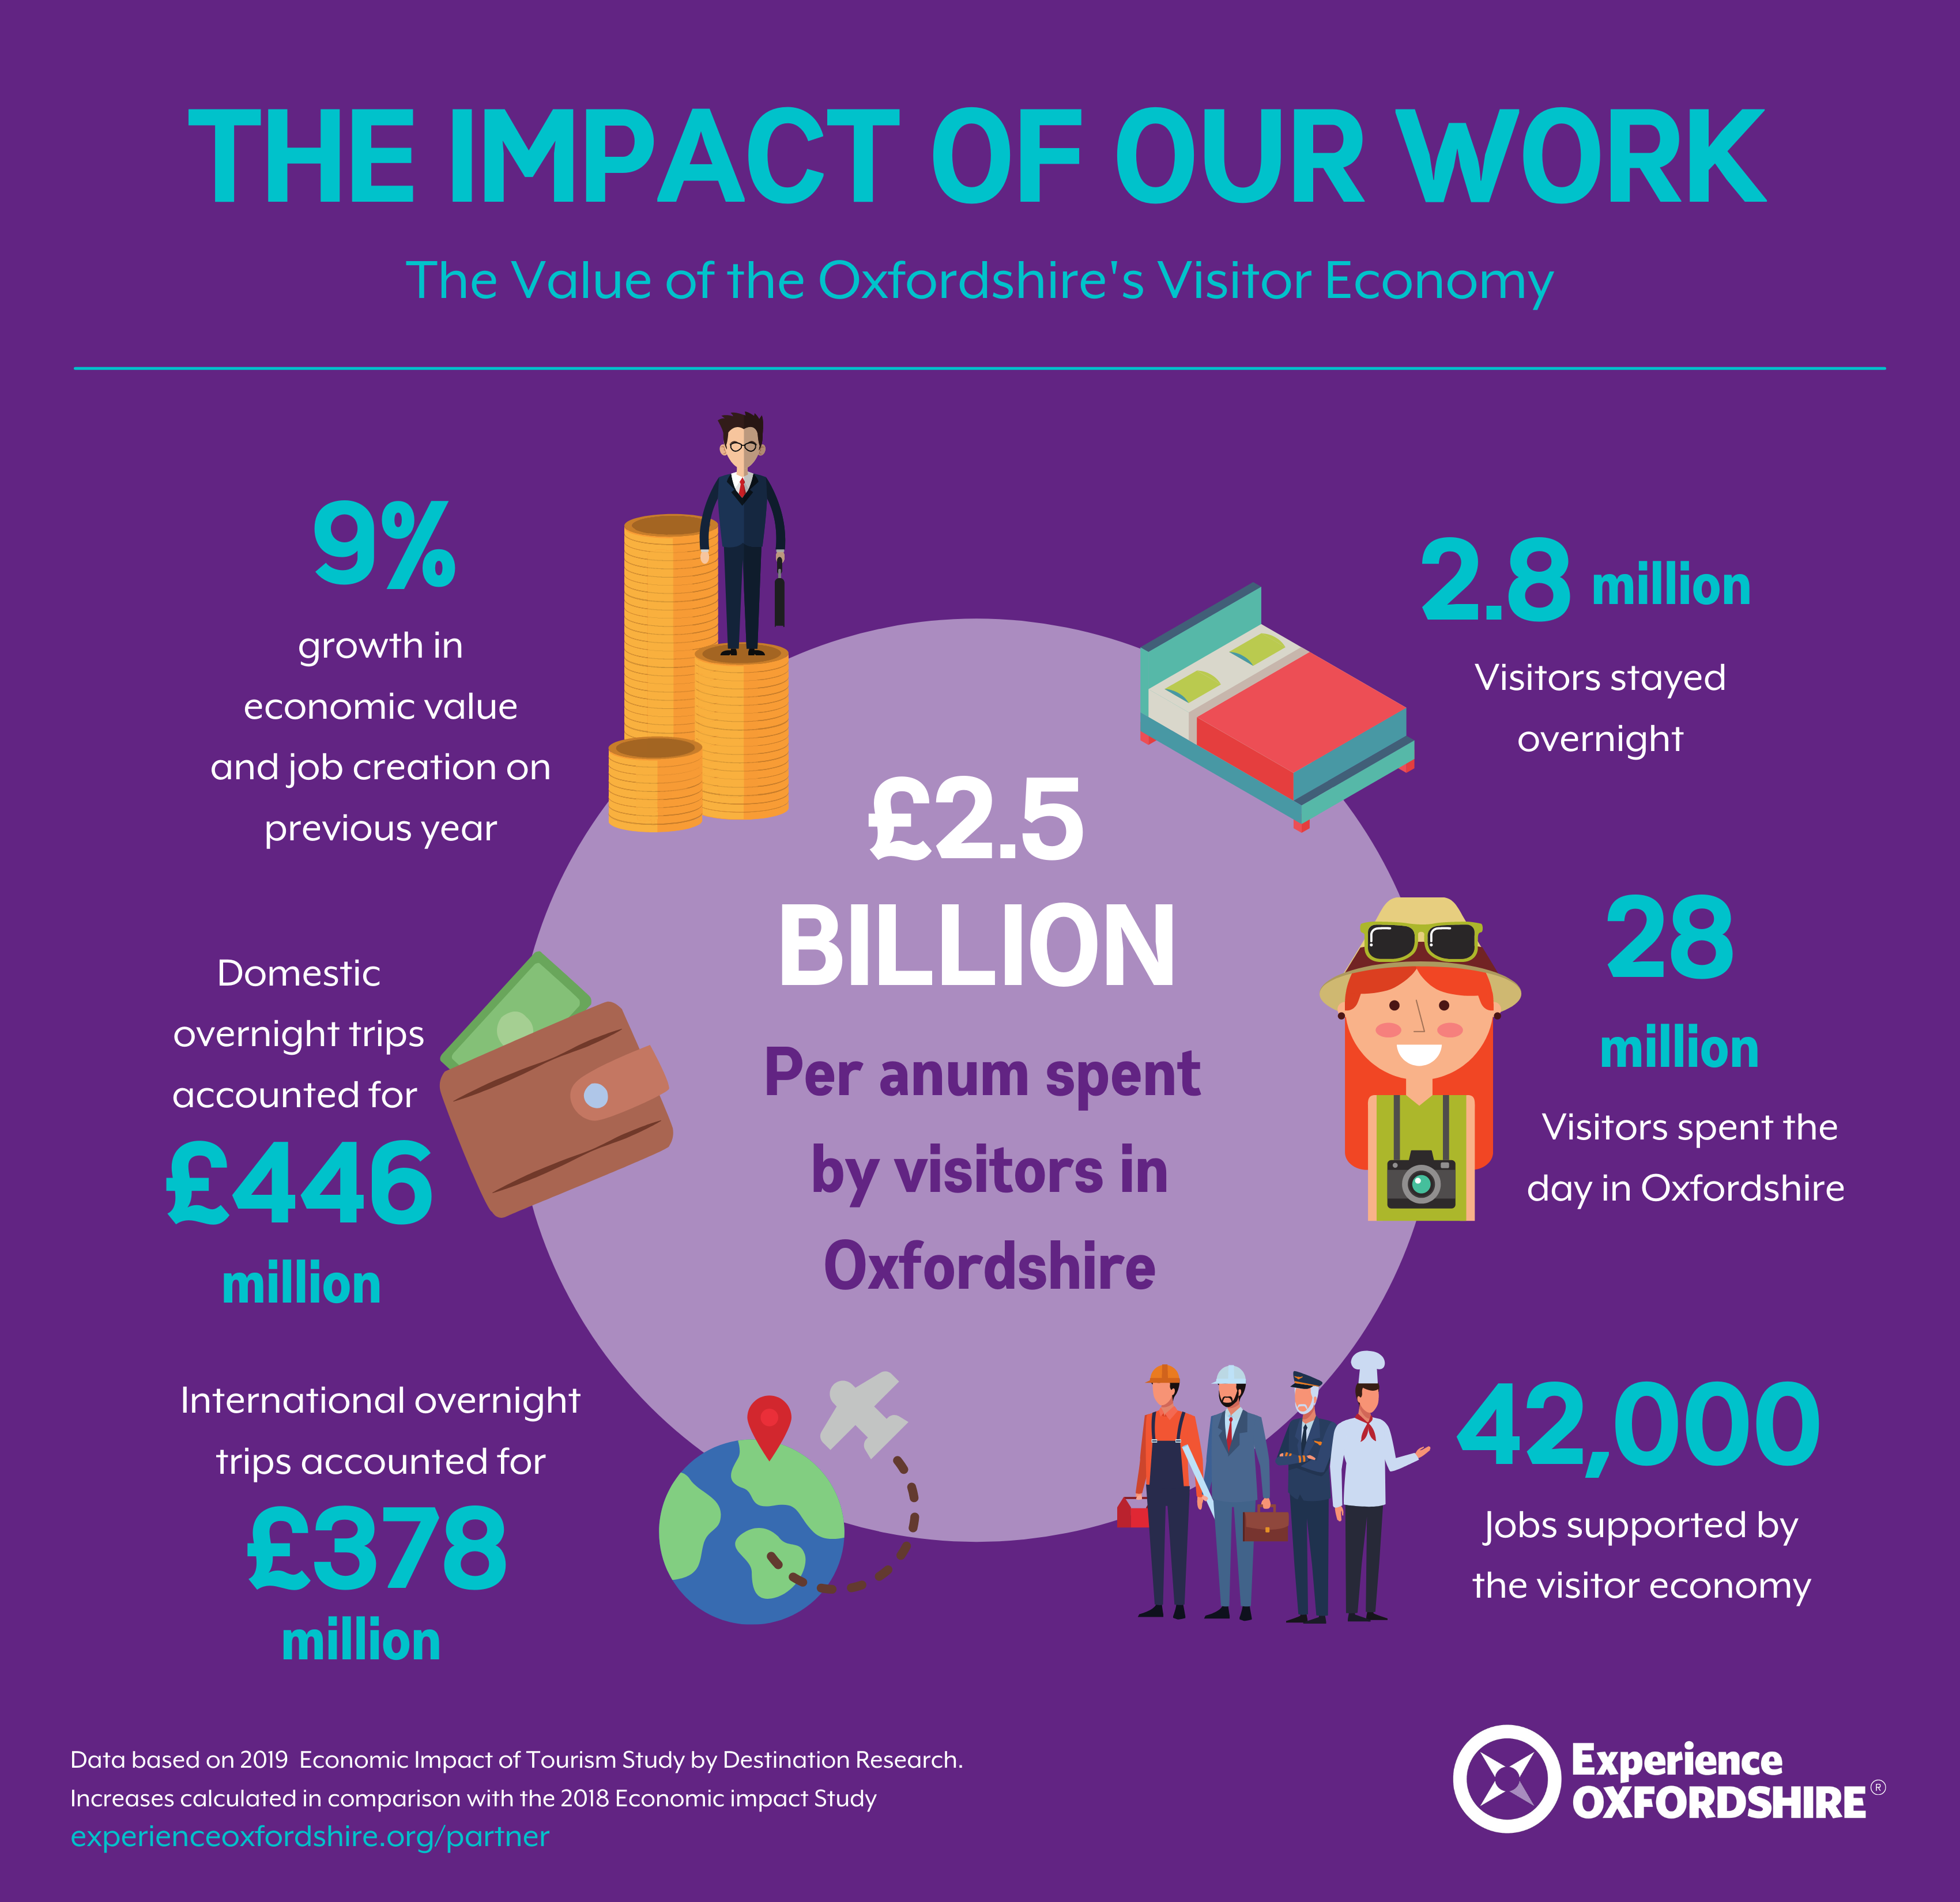 graphic showing impact of experience Oxfordshire work